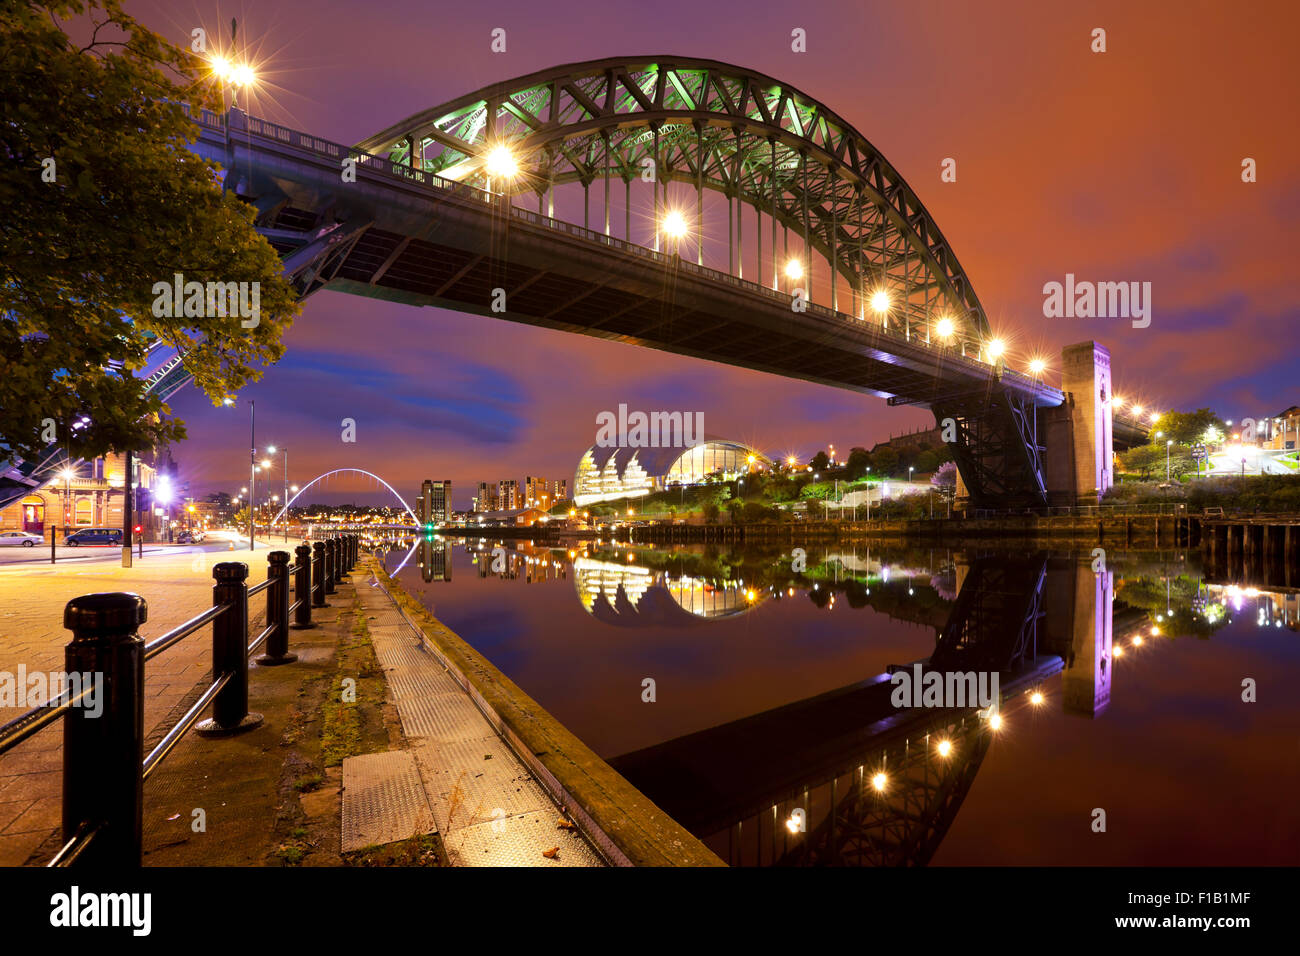 The Tyne Bridge over the river Tyne in Newcastle, England at night. Stock Photo